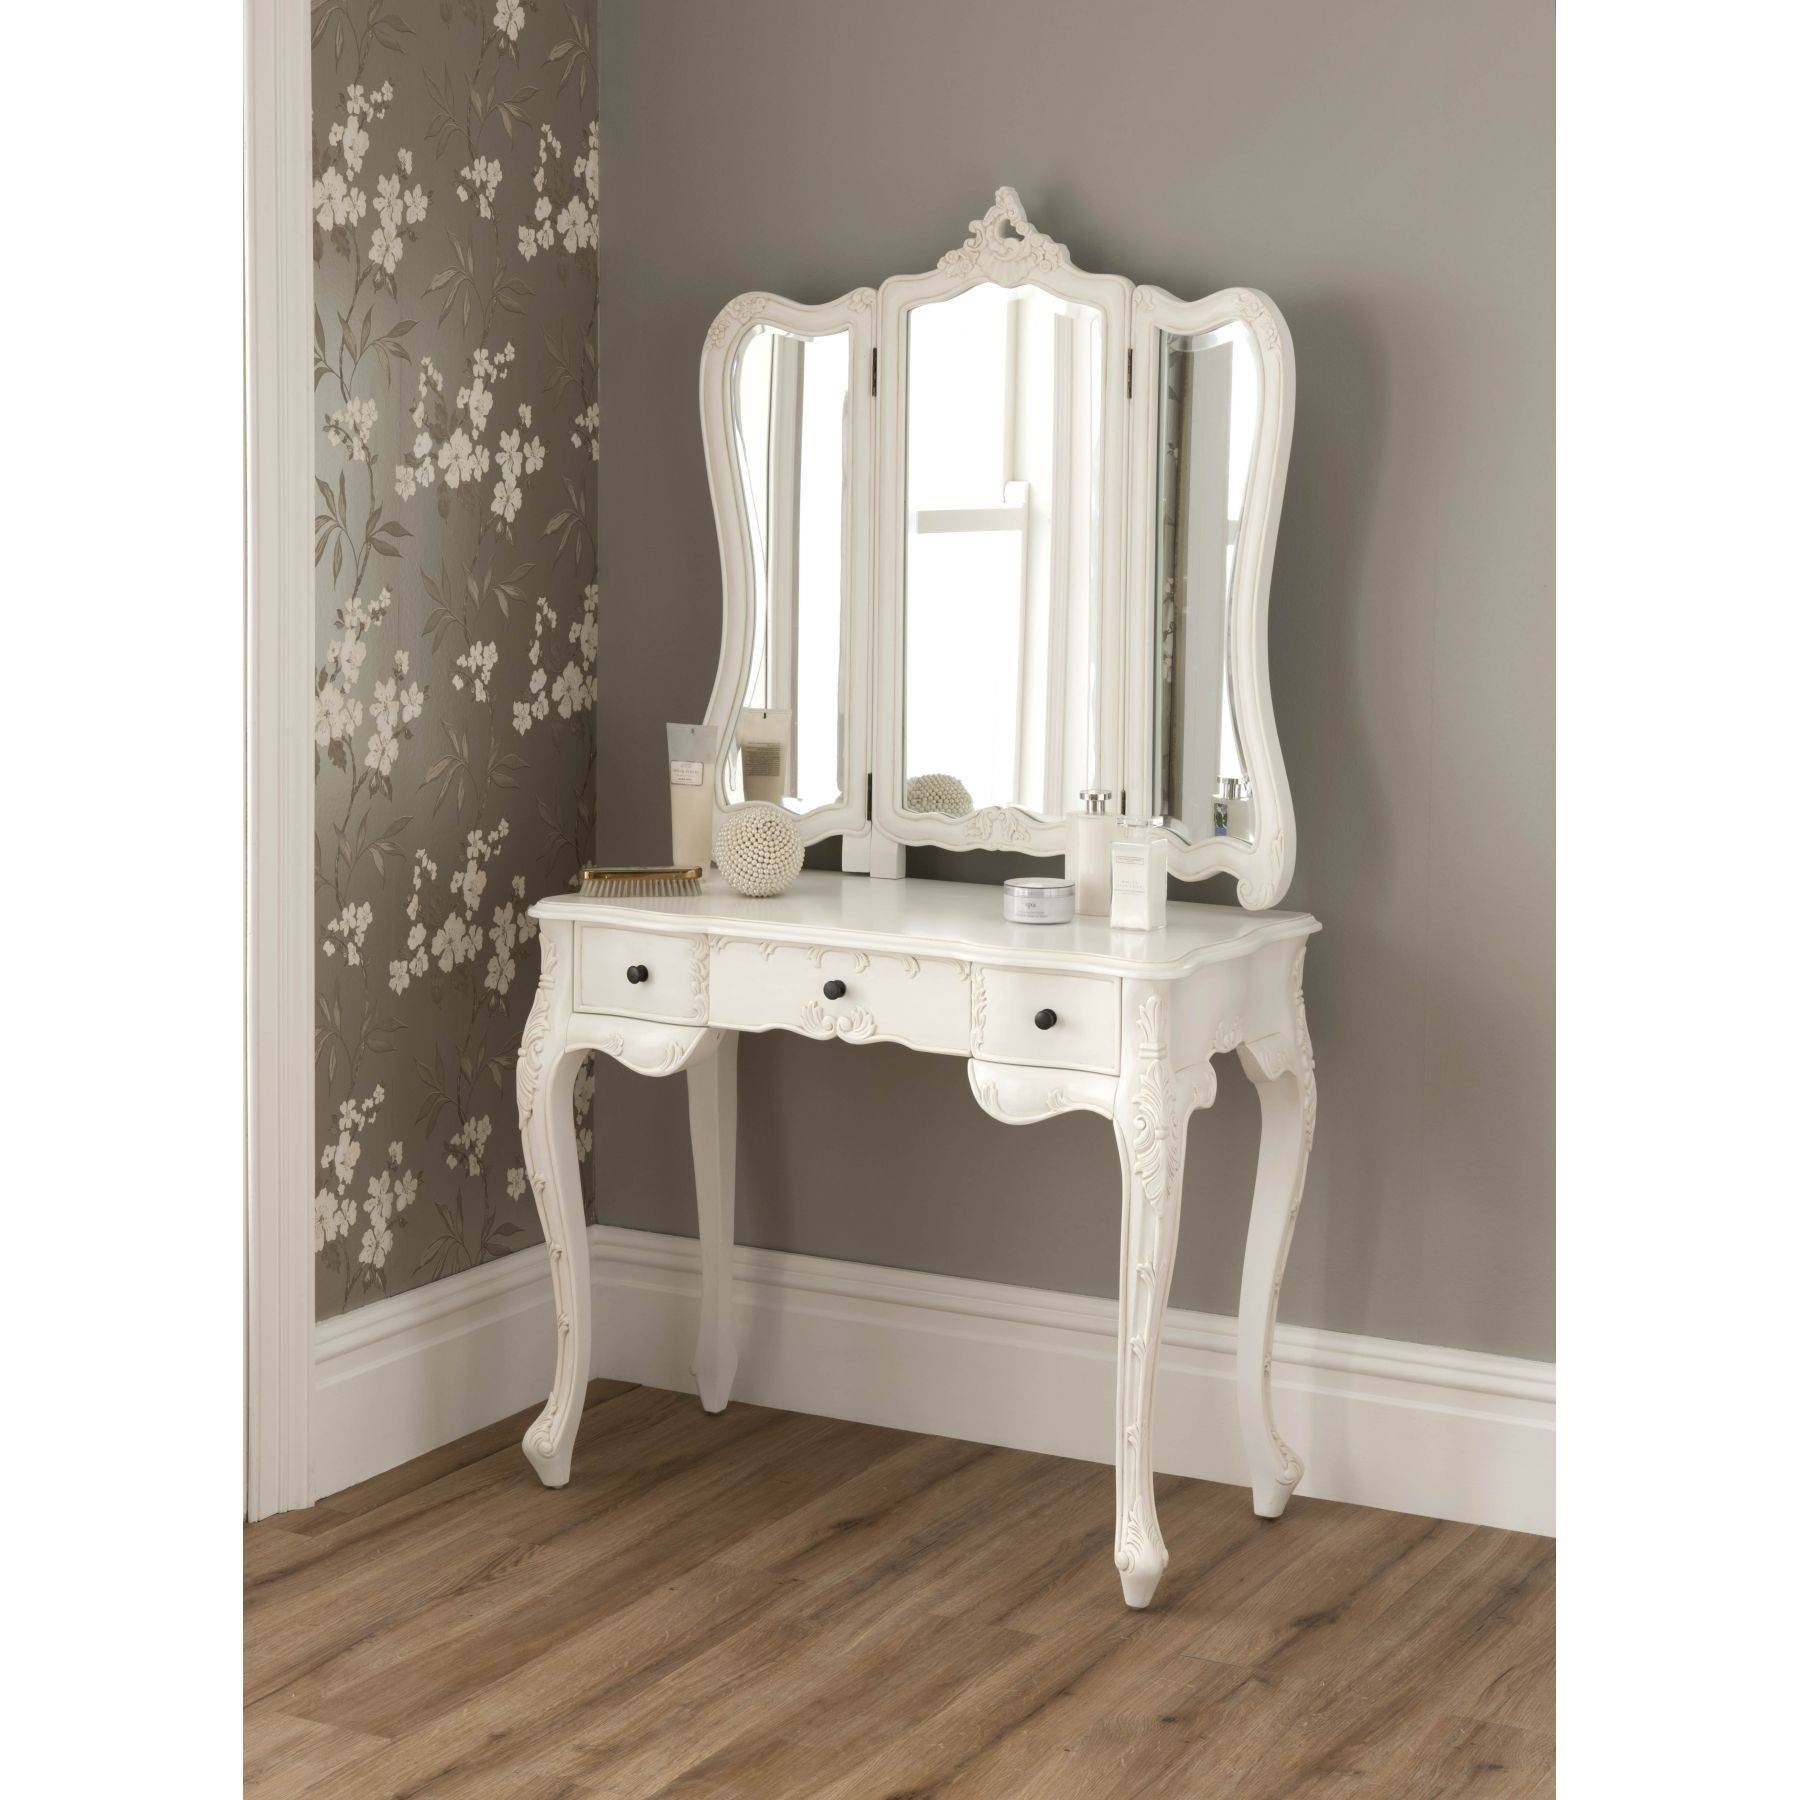 La Rochelle Antique French Dressing Table | Shabby Chic regarding French Style Dressing Table Mirrors (Image 19 of 25)